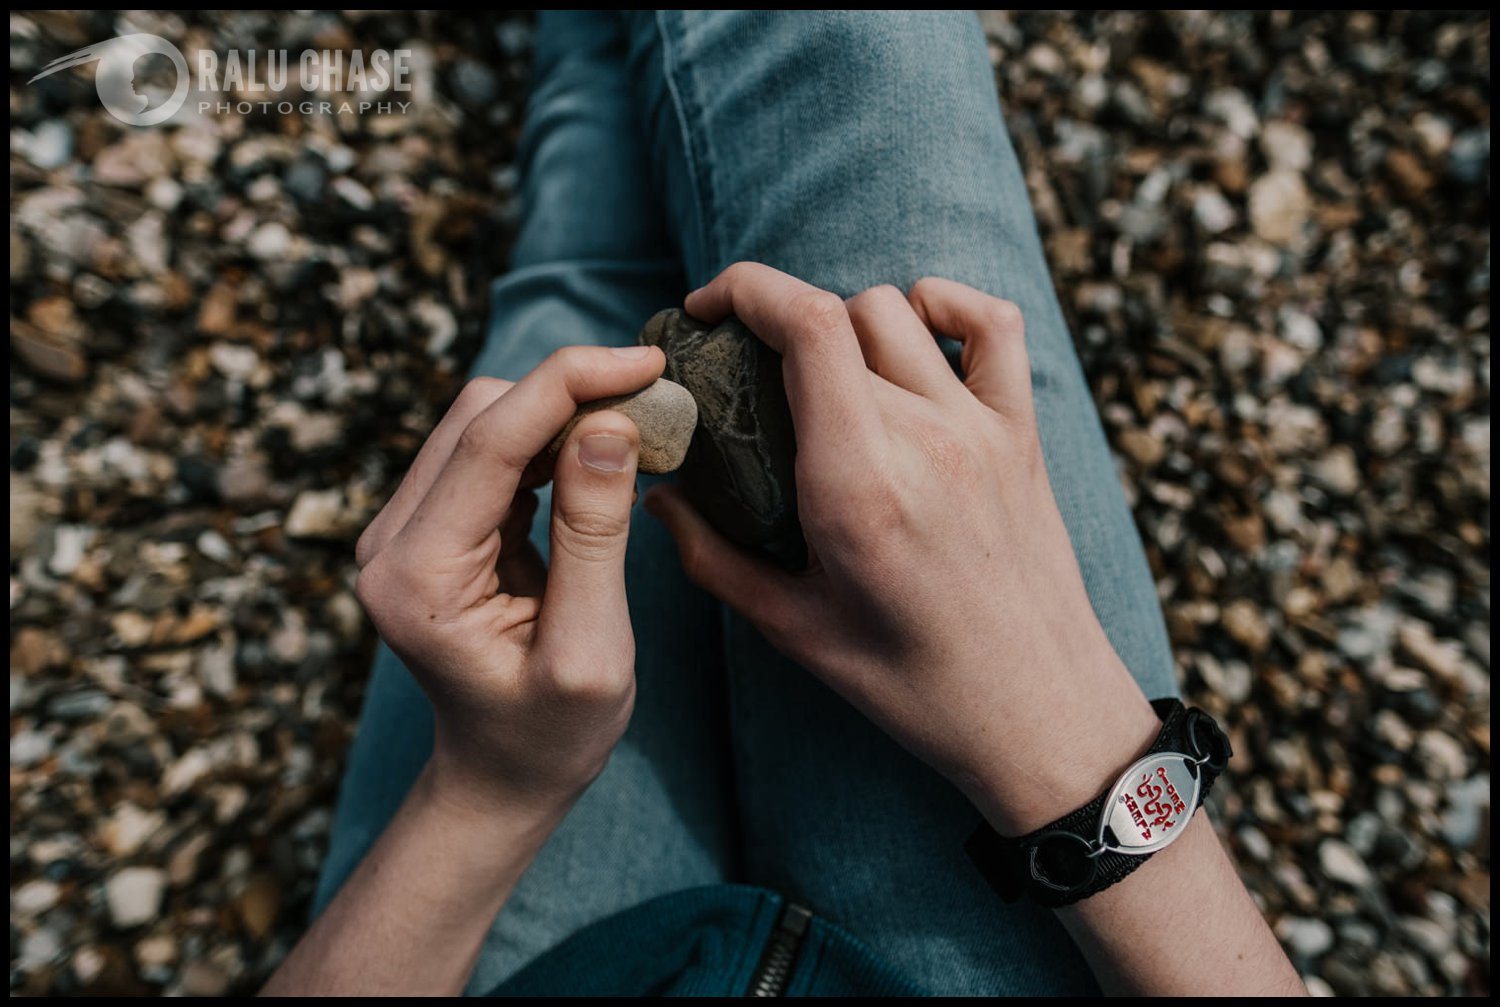 A detail image of the hands of a boy playing with rocks on the beach while wearing a medical alert bracelet. Photograph taken by personal branding photographer, Ralu Chase Photography